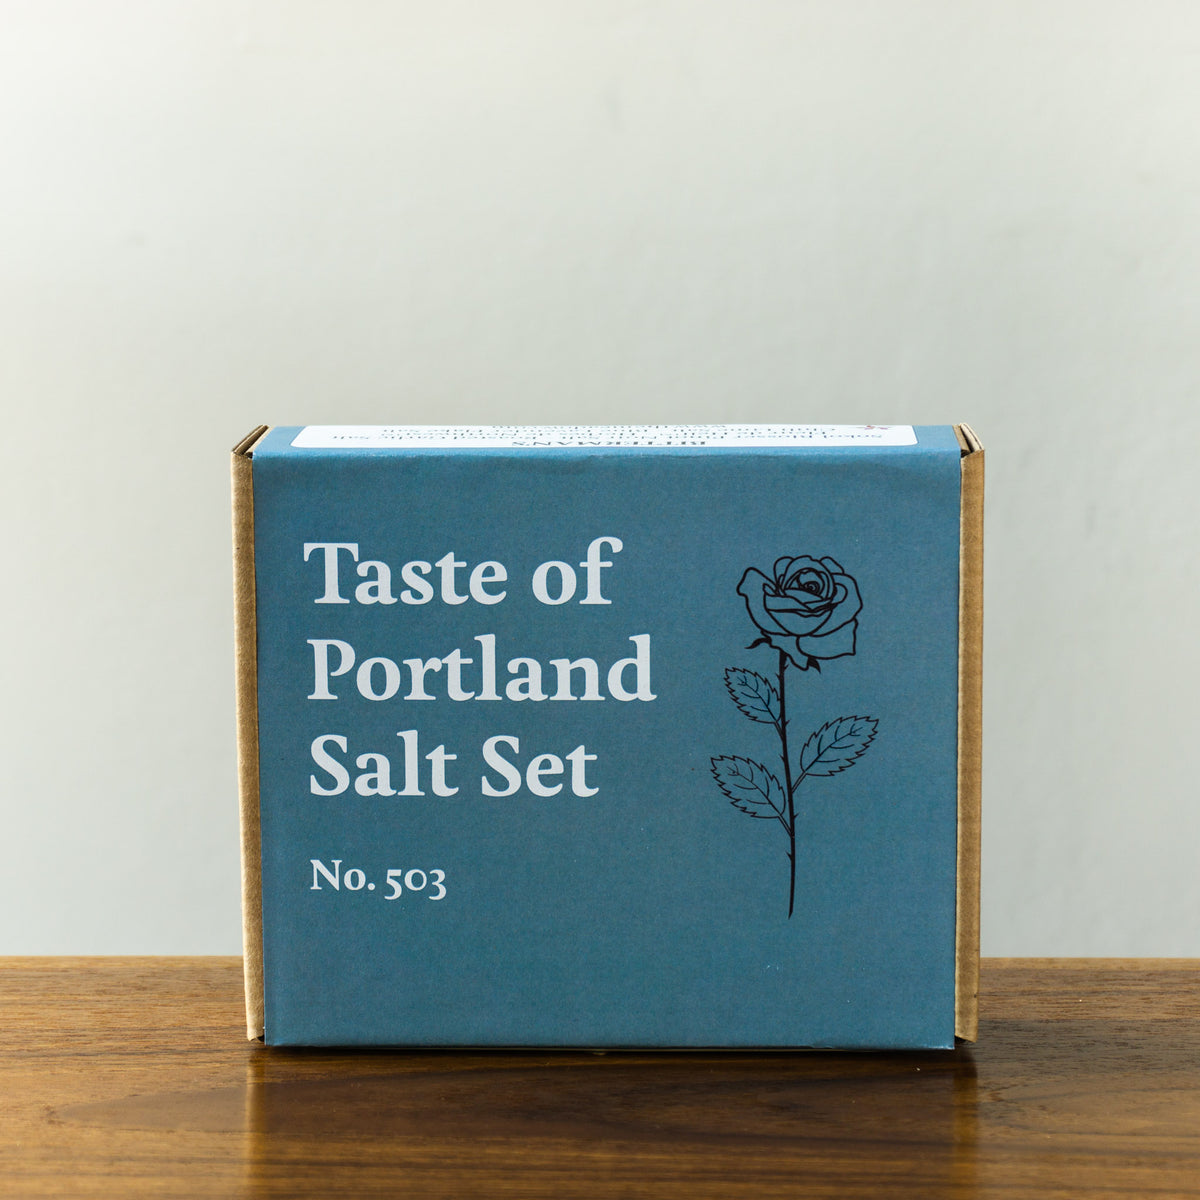 Taste of Portland Salt 6-Pack